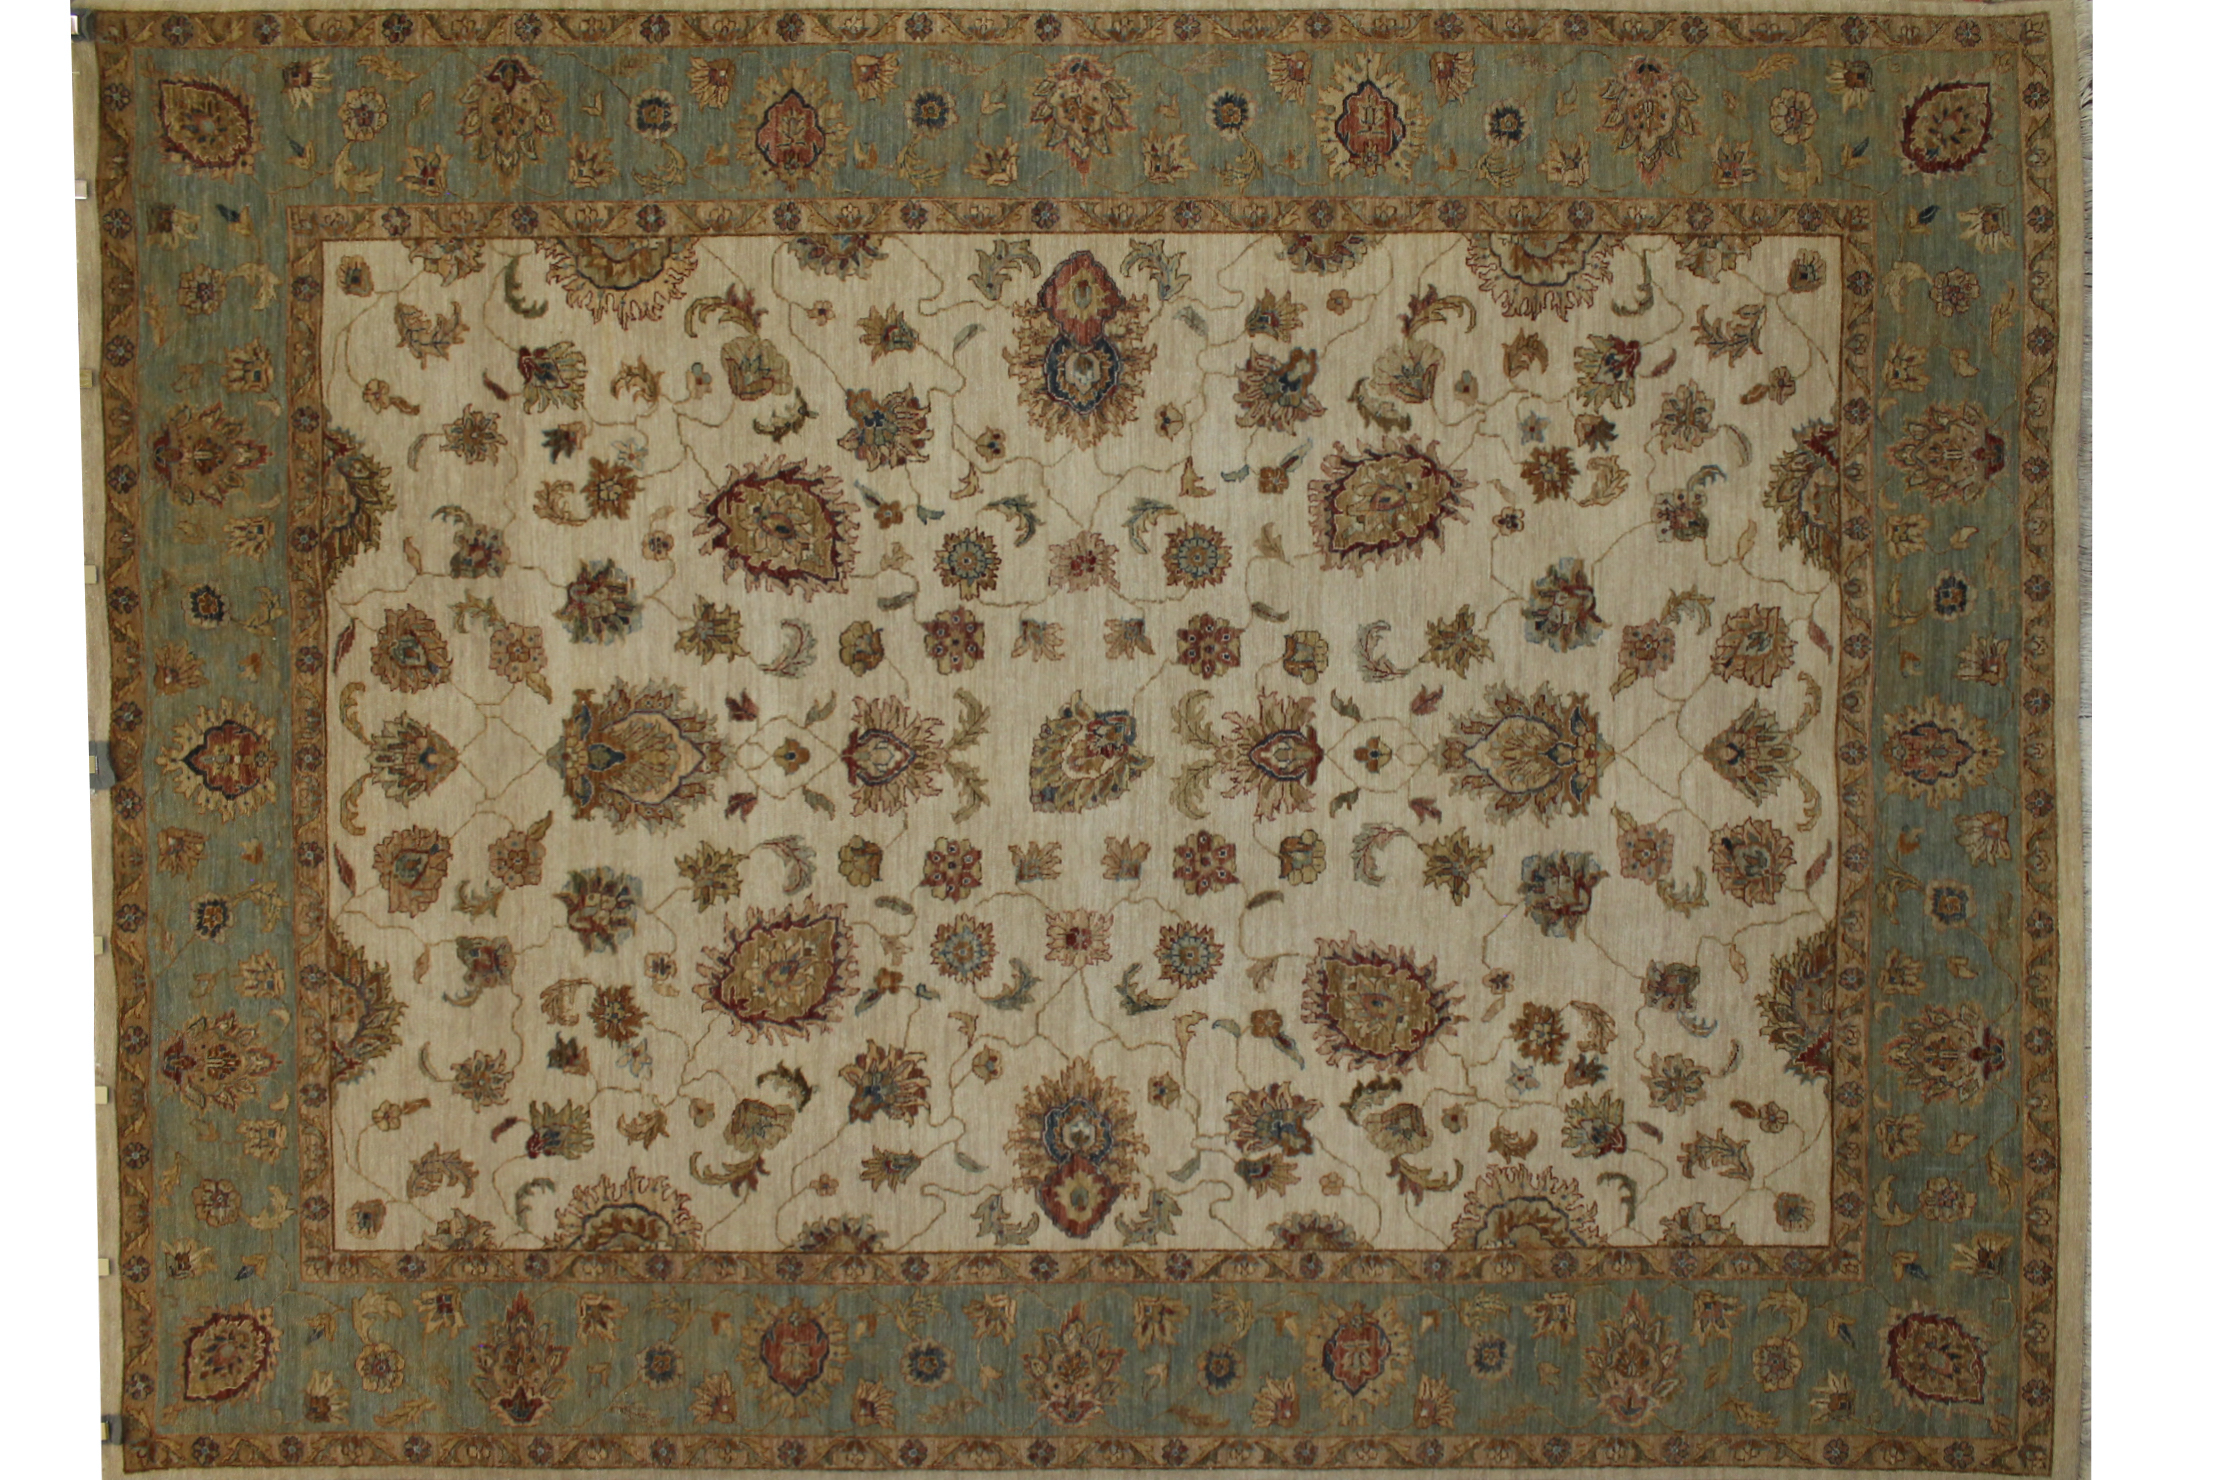 9x12 Traditional Hand Knotted Wool Area Rug - MR005865